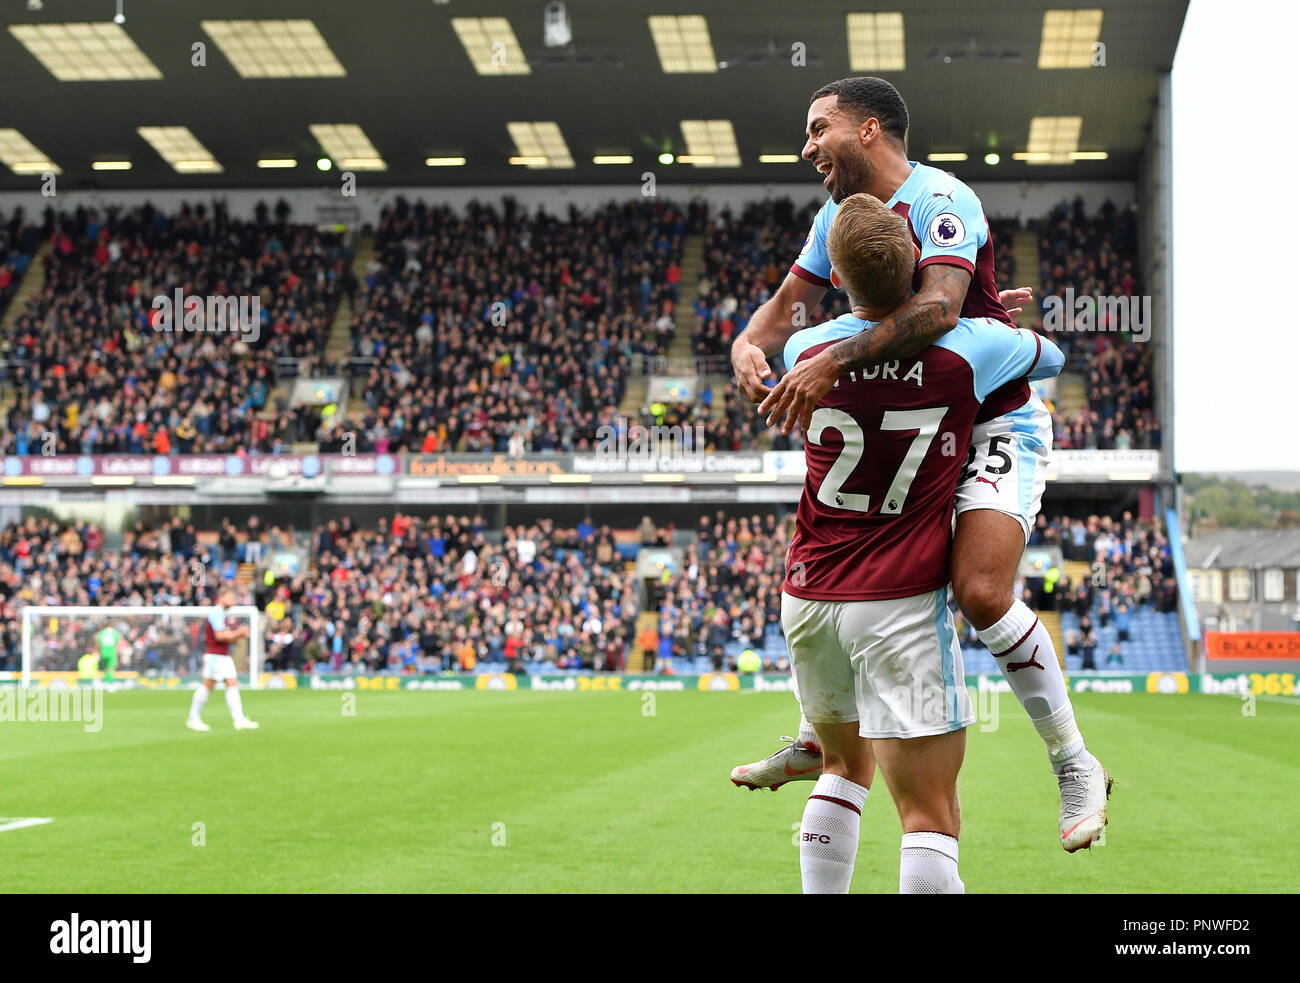 37843960aec Burnley s Matej Vydra (27) celebrates with Aaron Lennon after scoring his  side s first goal of the game during the Premier League match at Turf Moor